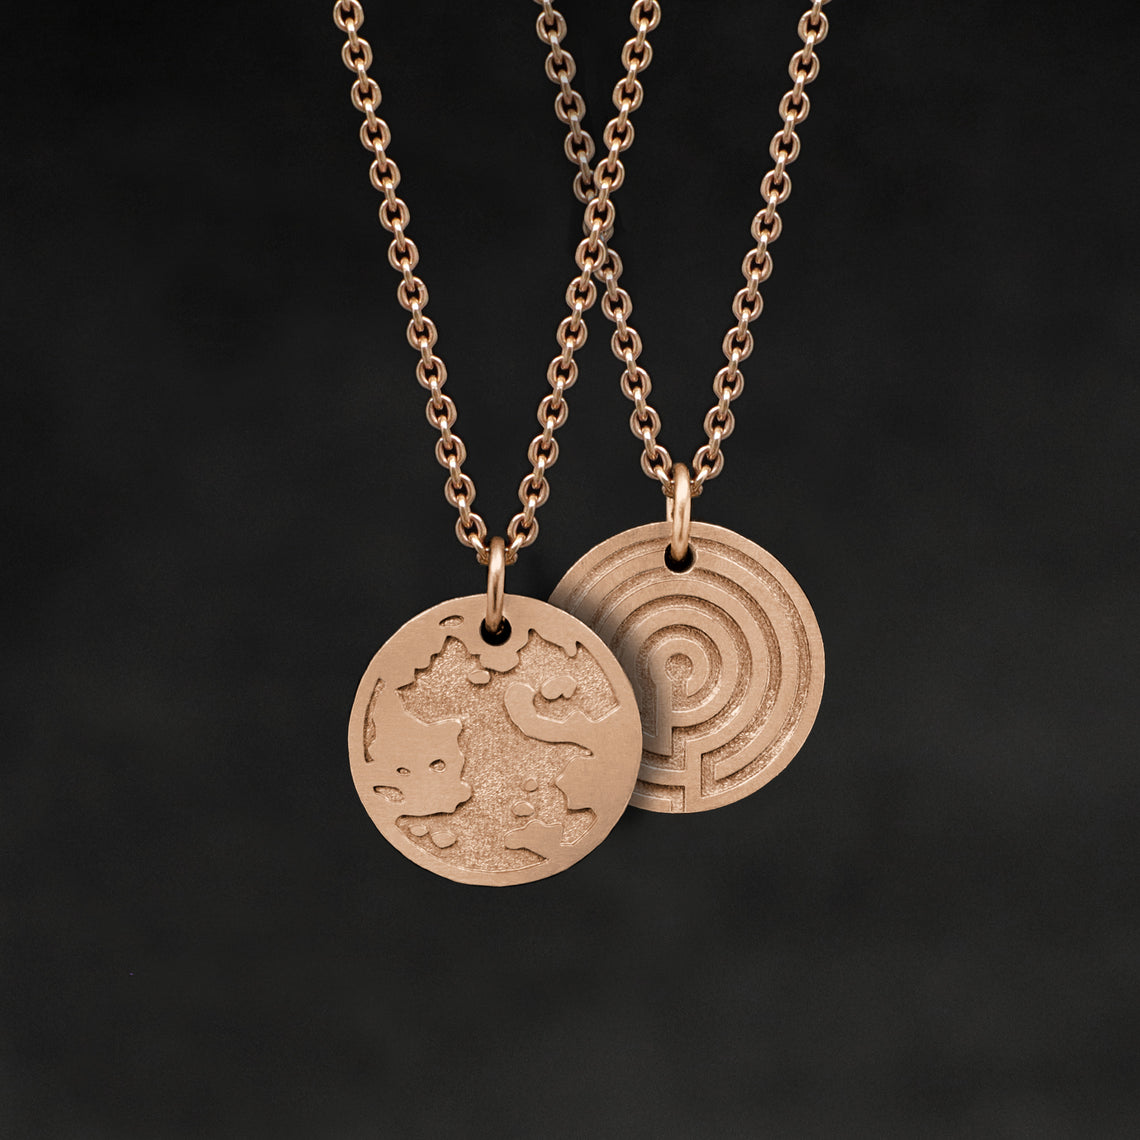 Hanging view of 18K Rose Gold Journey pendant and chain necklace featuring the Map of Humanity as outward journey and labyrinth as inward journey by Caps Brothers